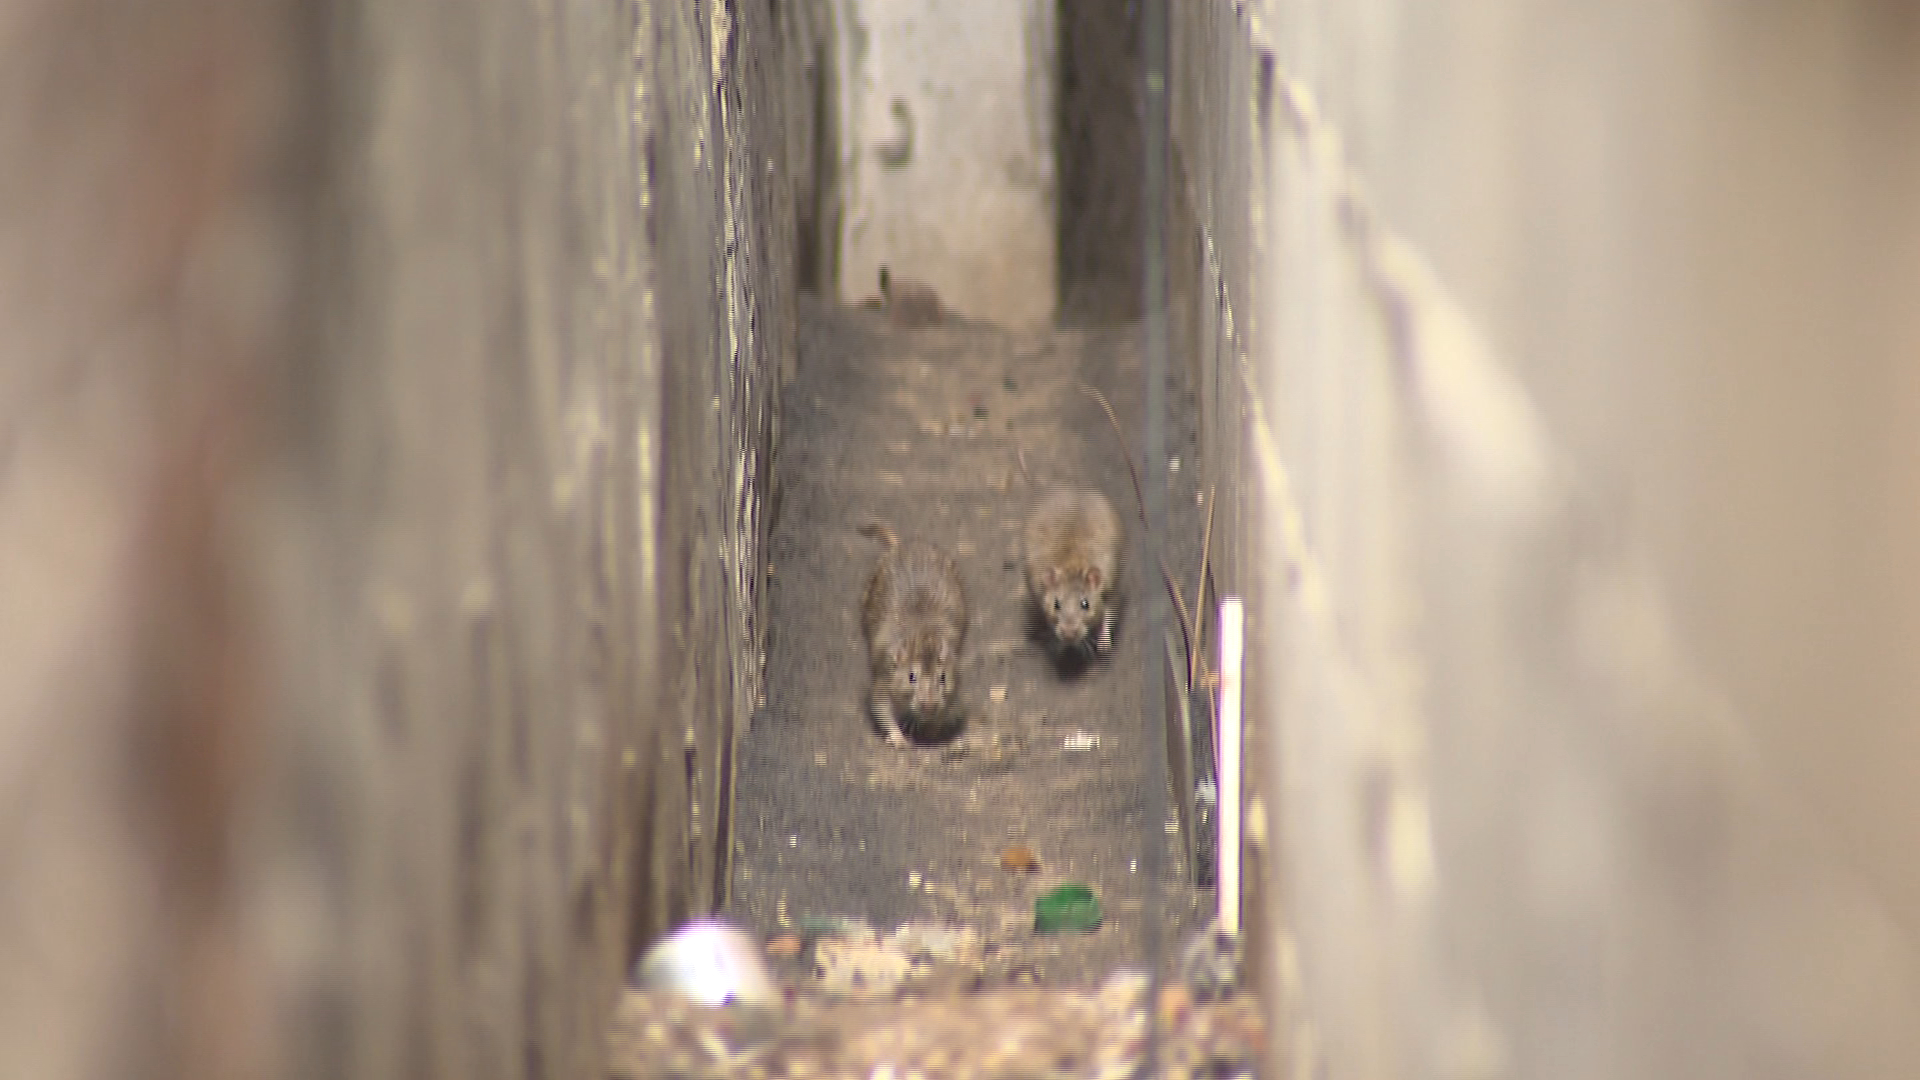 Expert says Toronto's rat problem is getting worse